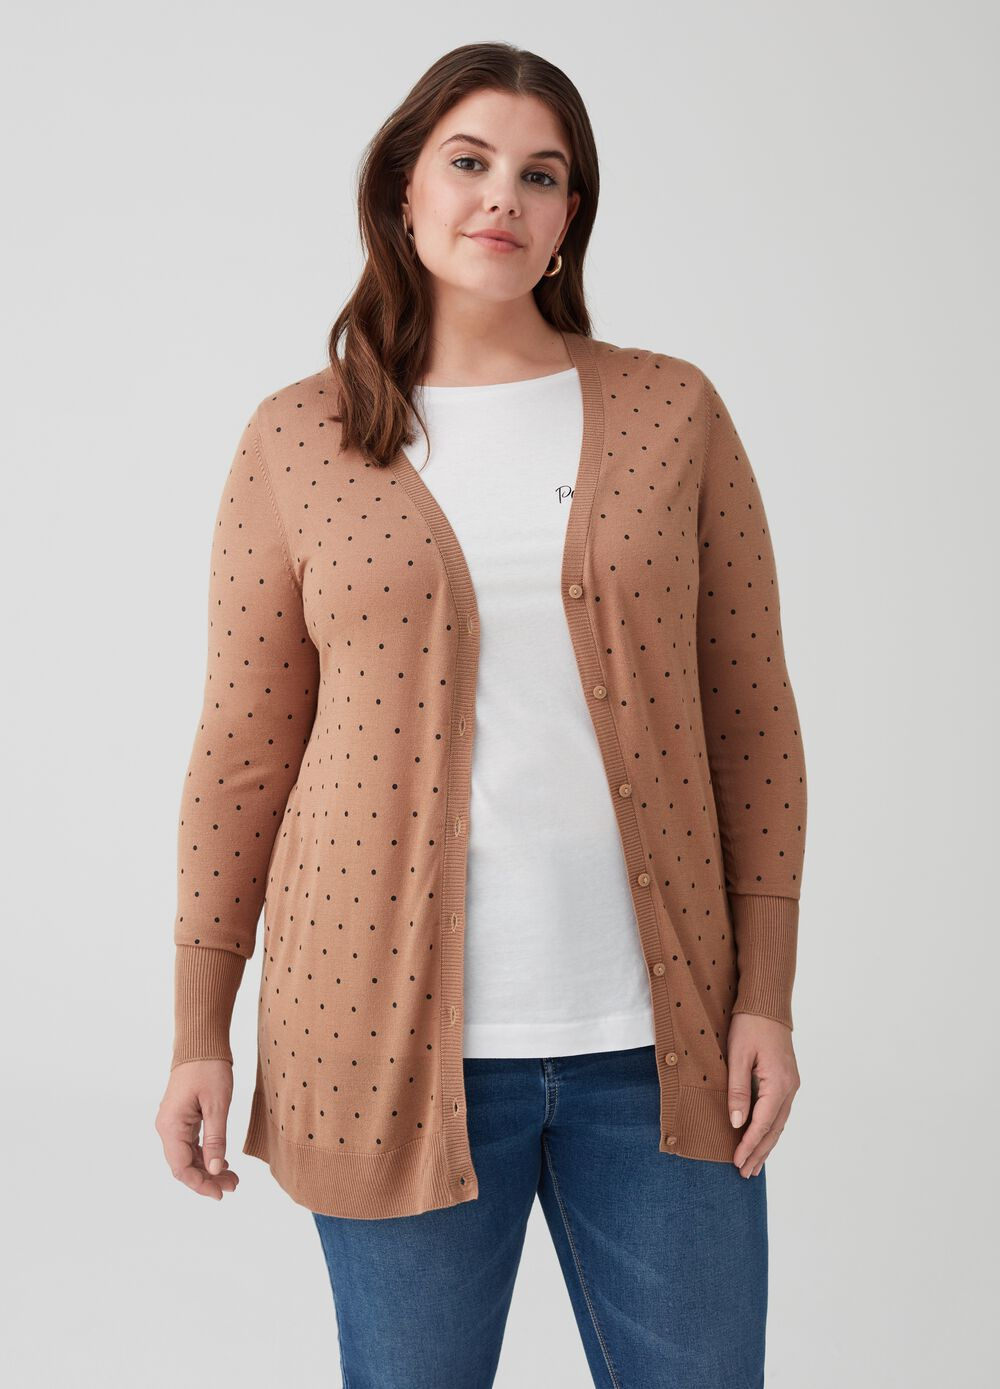 Curvy knit cardigan with ribbing and polka dots